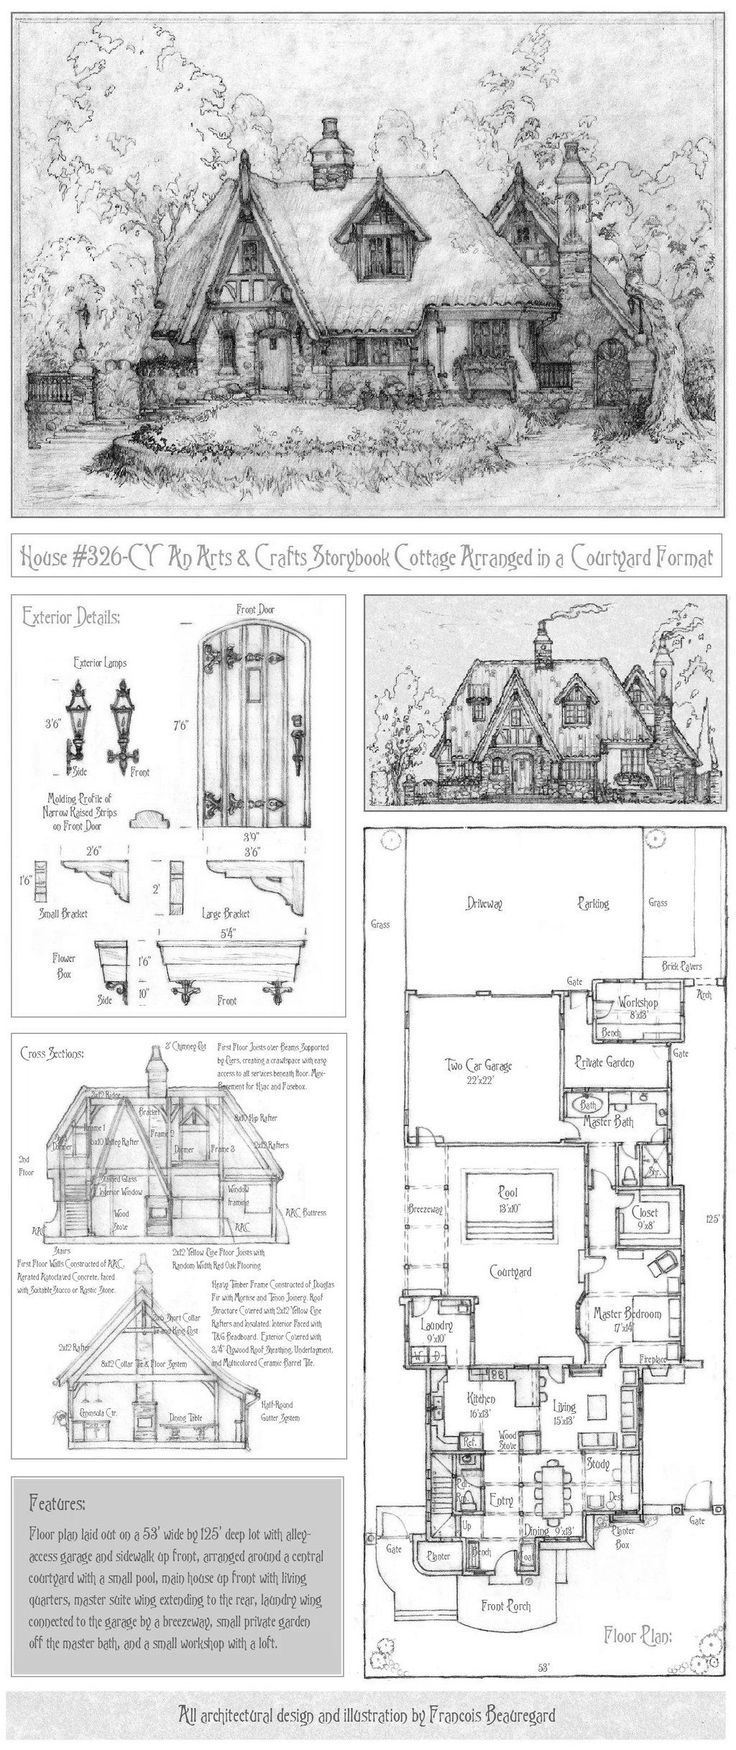 93 best courtyard homes home sweet home images on pinterest house 326 full plan with portrait by built4ever deviantart com on deviantart